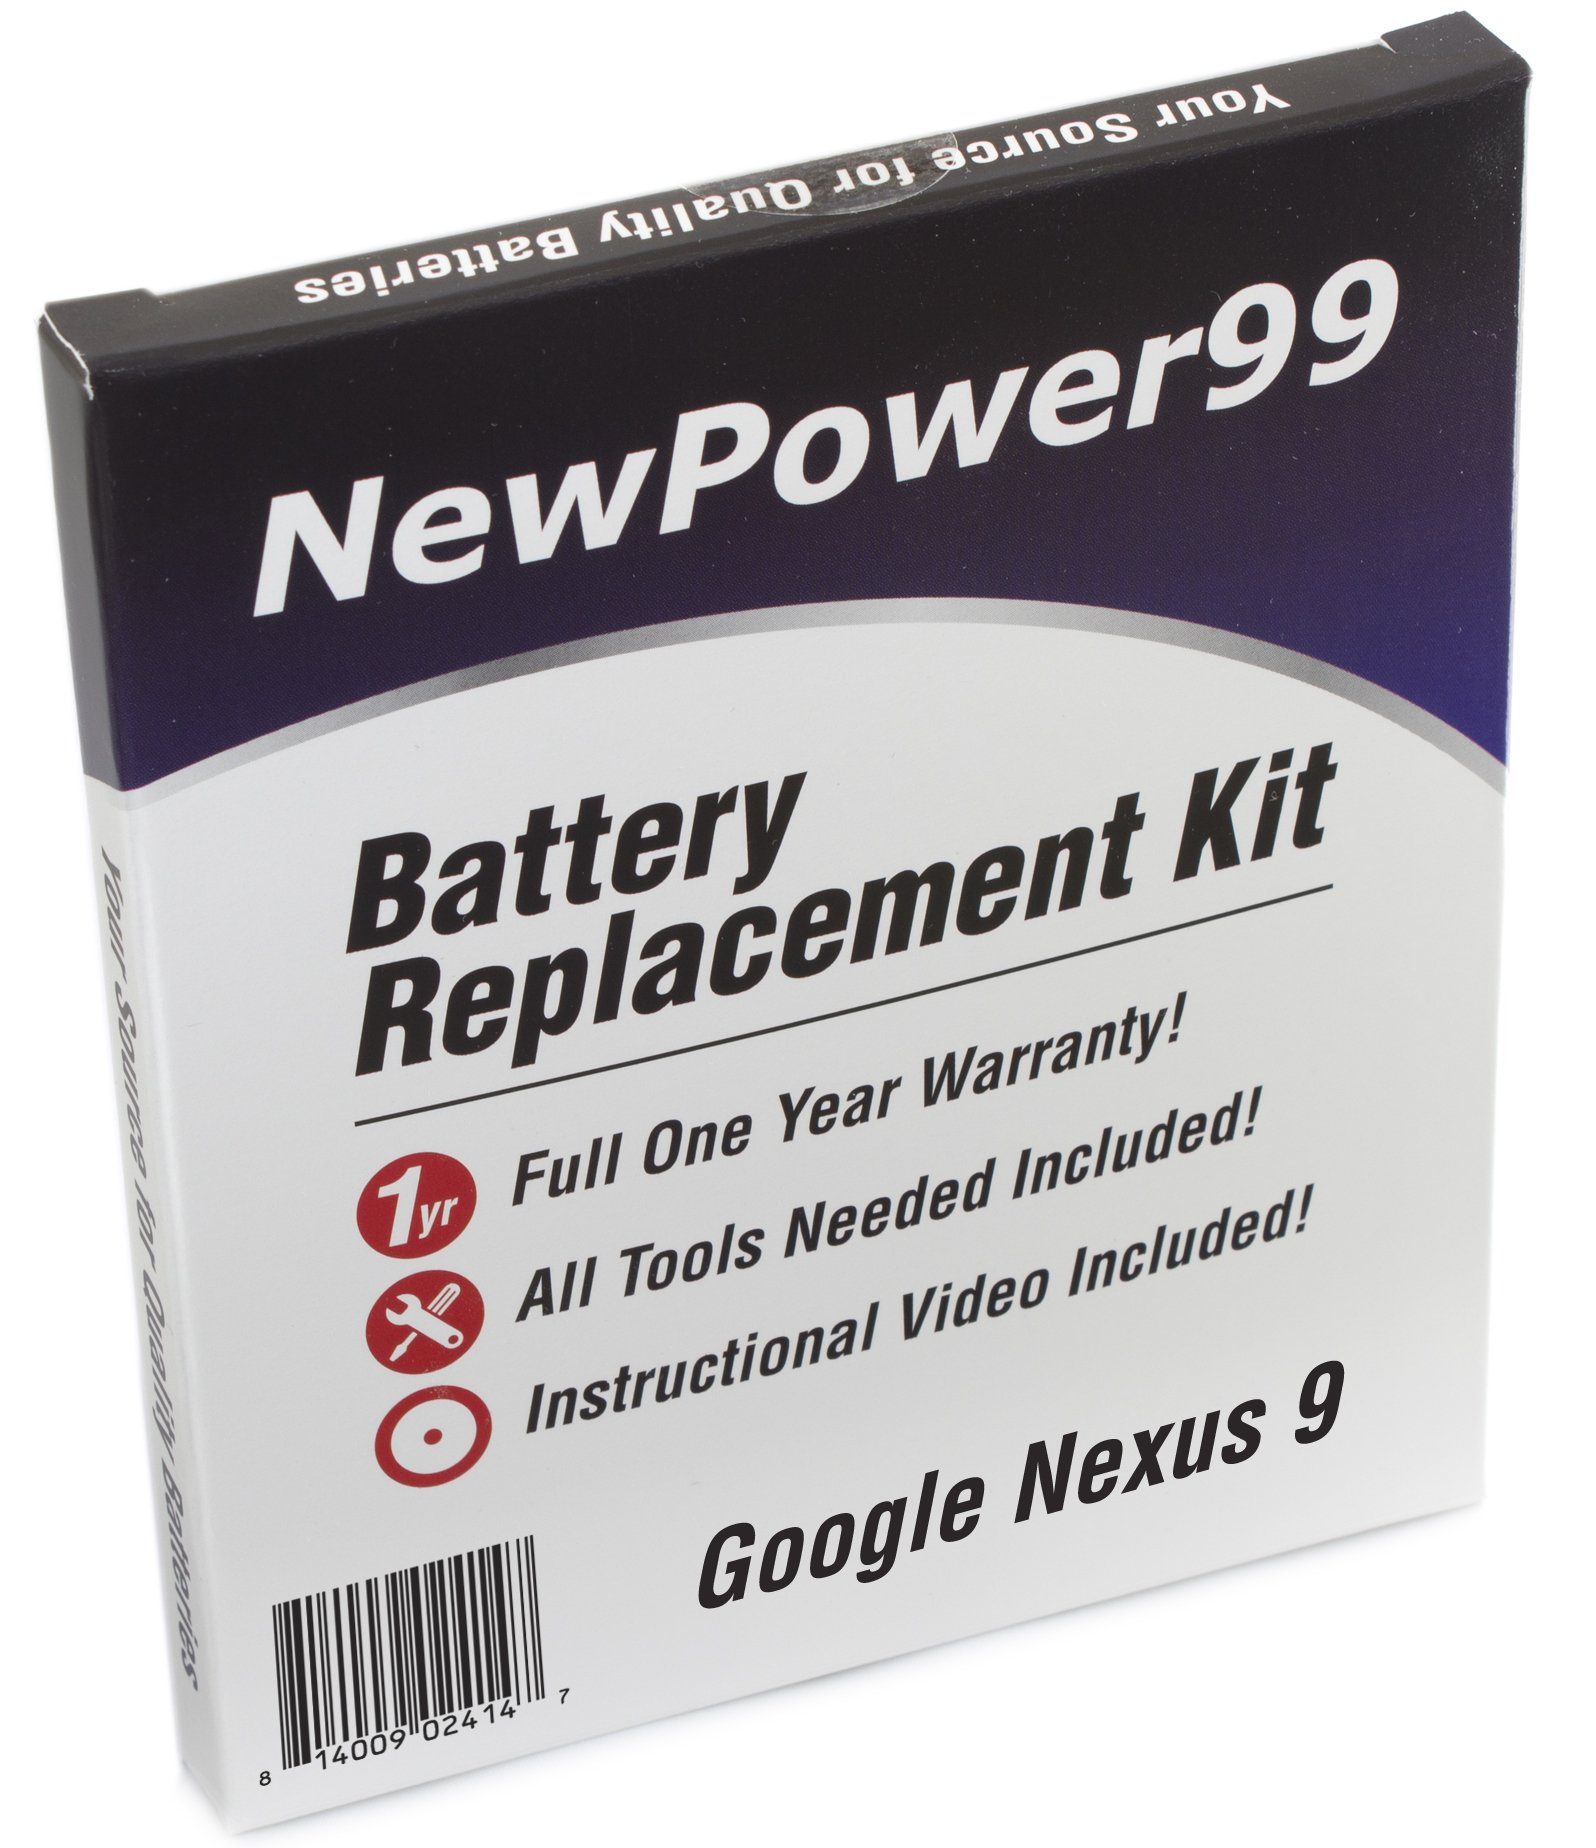 Google Nexus 9 Battery Replacement Kit with Video Installation DVD, Installation Tools, and Extended Life Battery